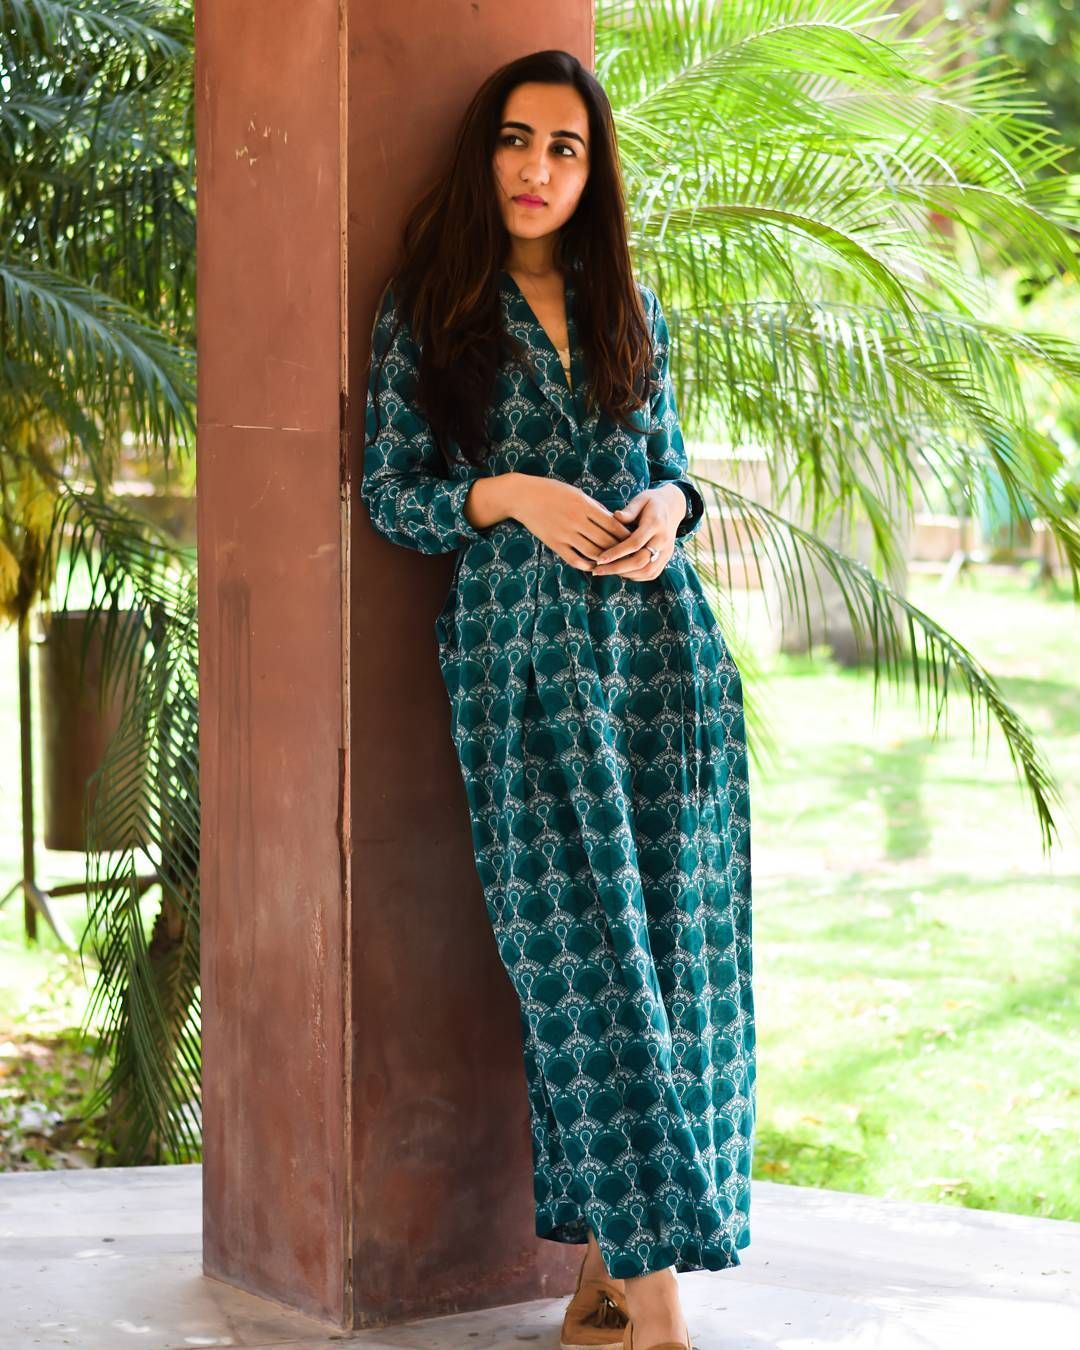 d6b8dbe0649cb0 Stylish And Affordable Maxi Dresses For This Summer